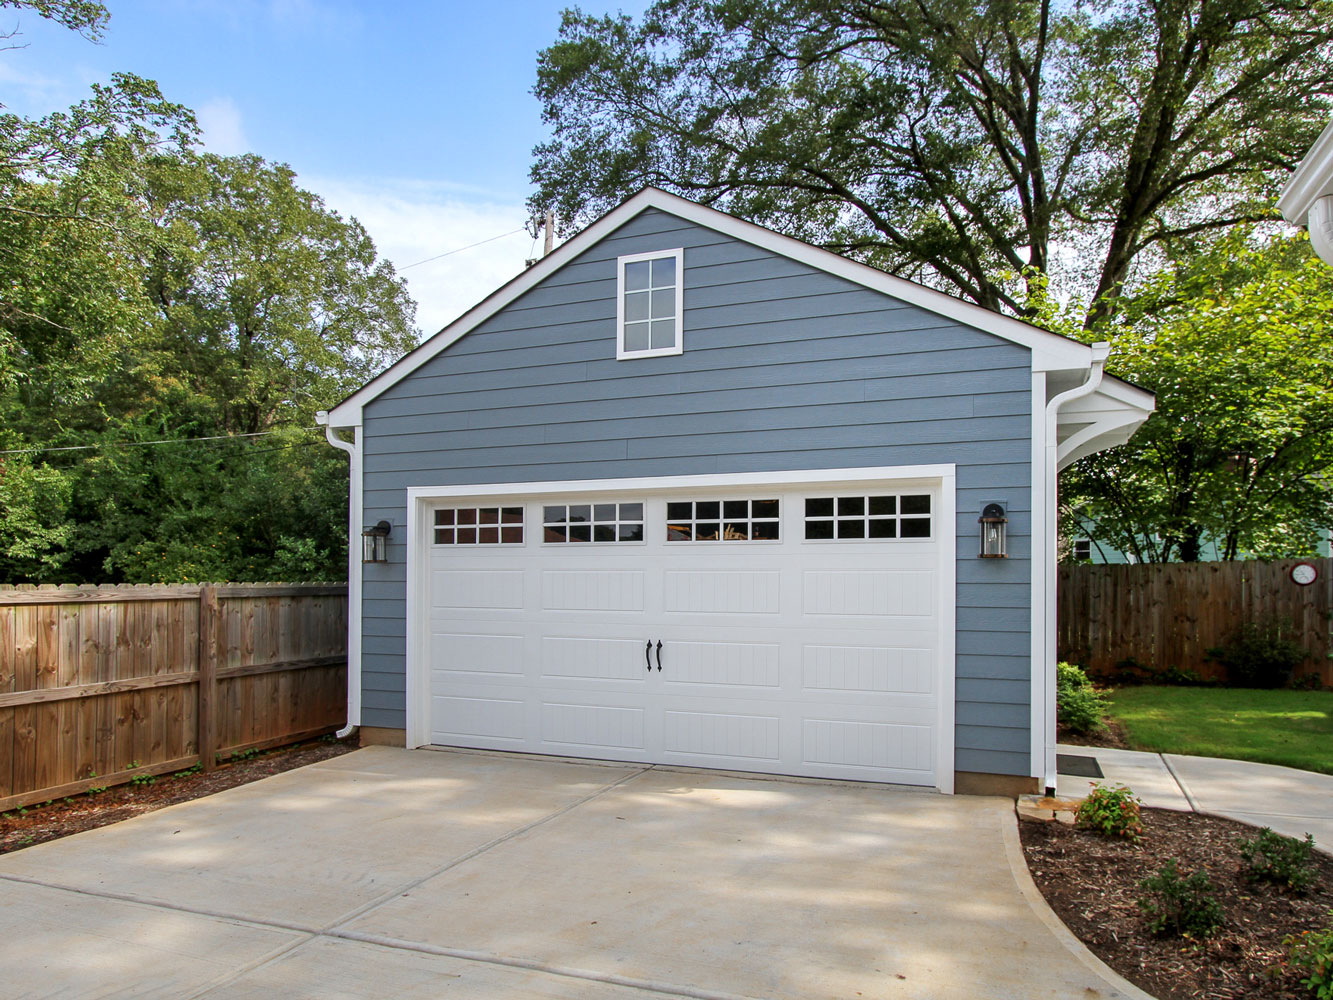 Sedgefield-Detached-Garage_6546